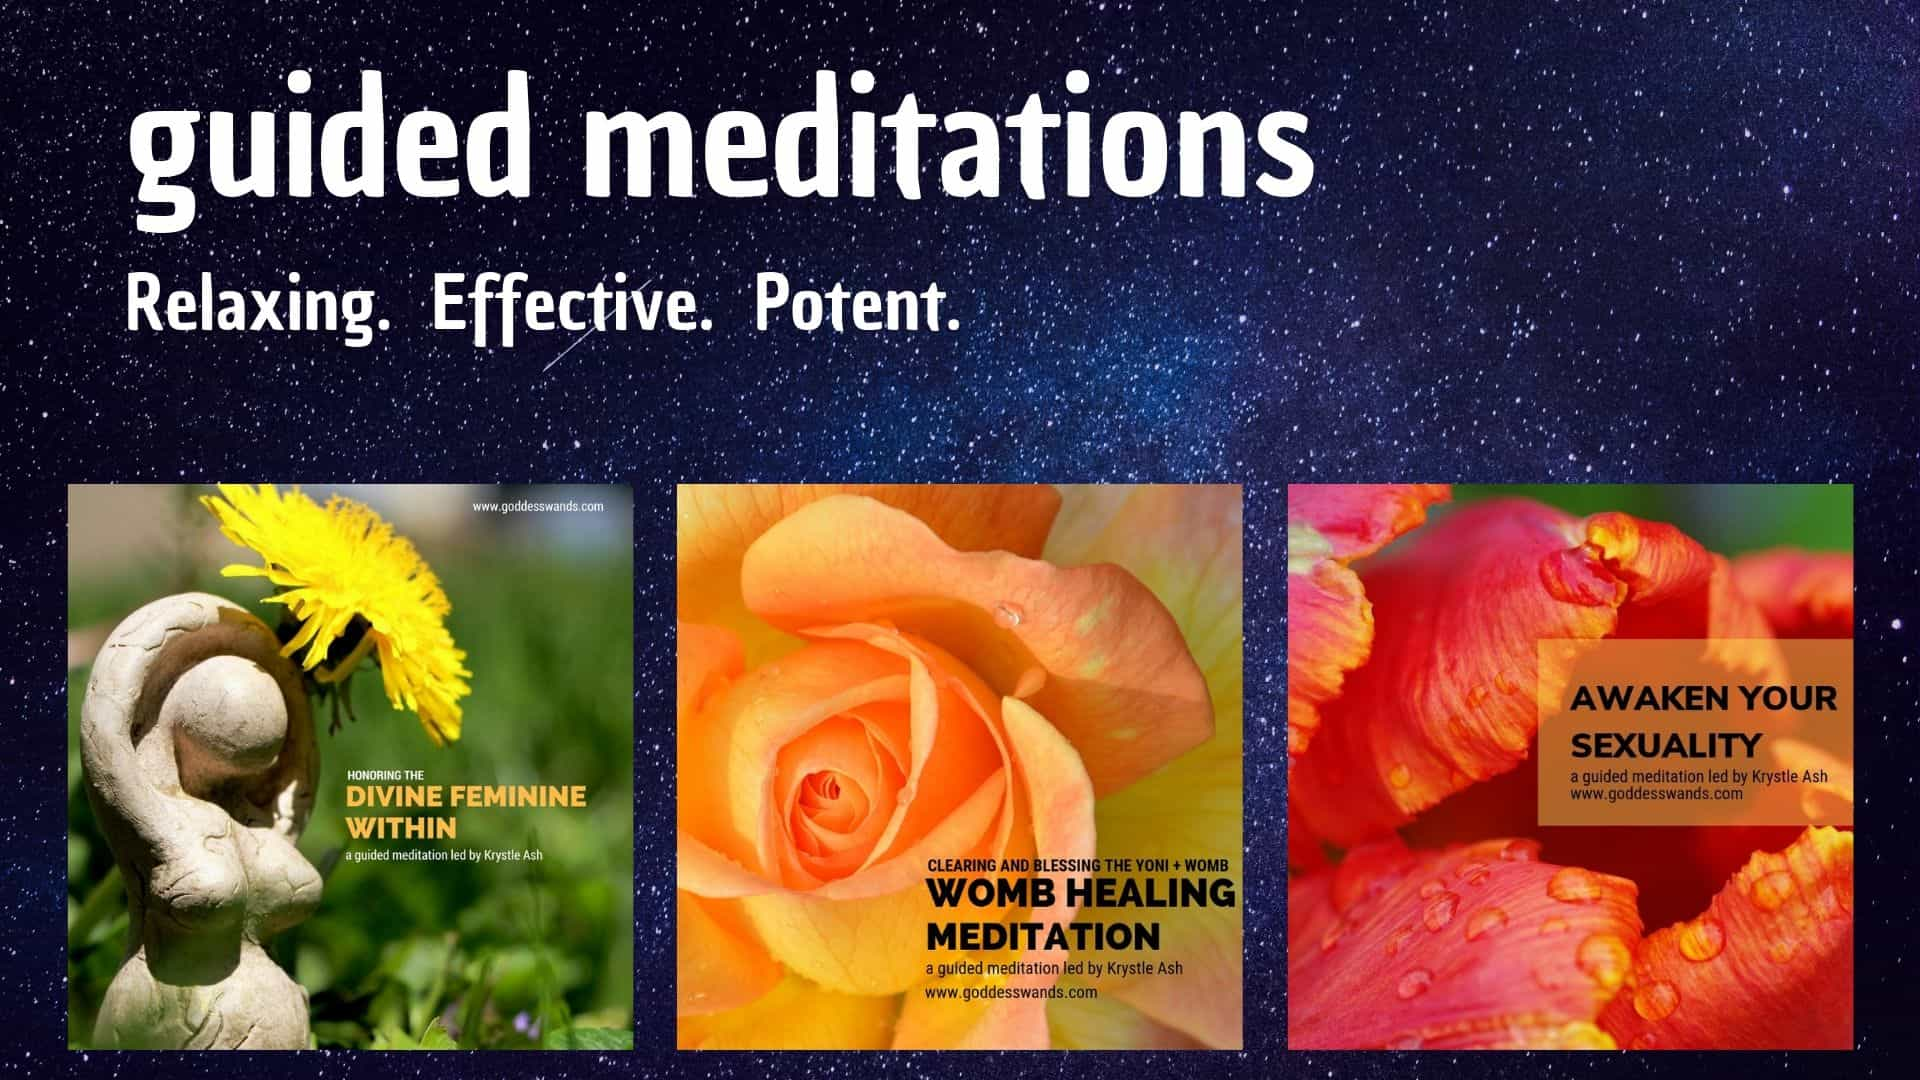 tantric meditations, guided meditations, women's work, divine feminine meditation, goddess wands, krystle ash, womb healing meditation, goddess meditation, yoni meditation, sex chakra